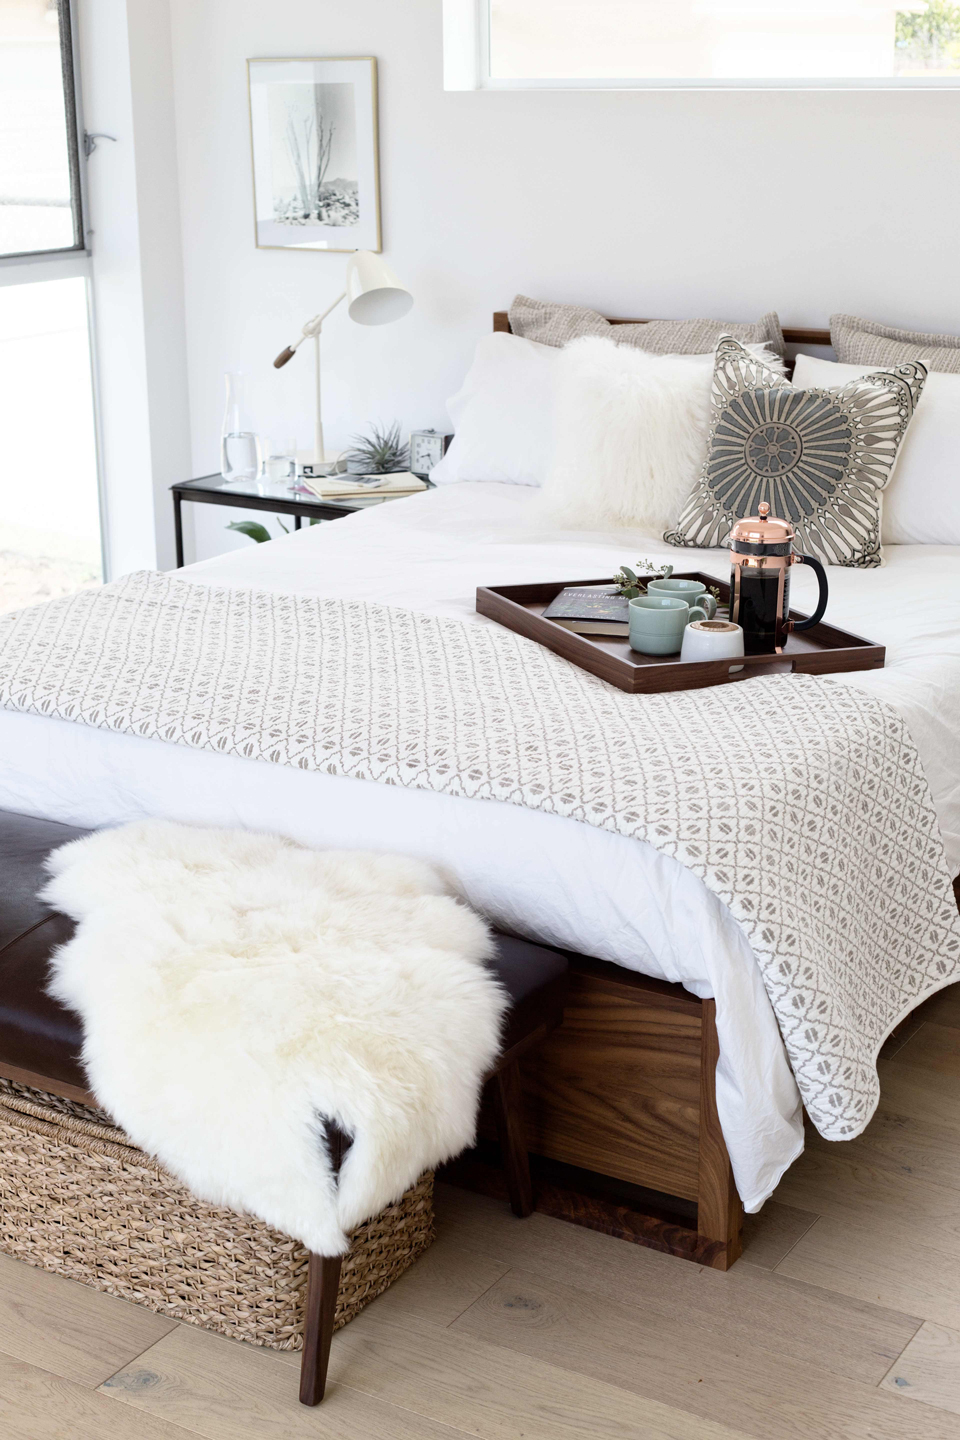 Amazing Modern Bedroom Ideas - Your No.1 source of ...